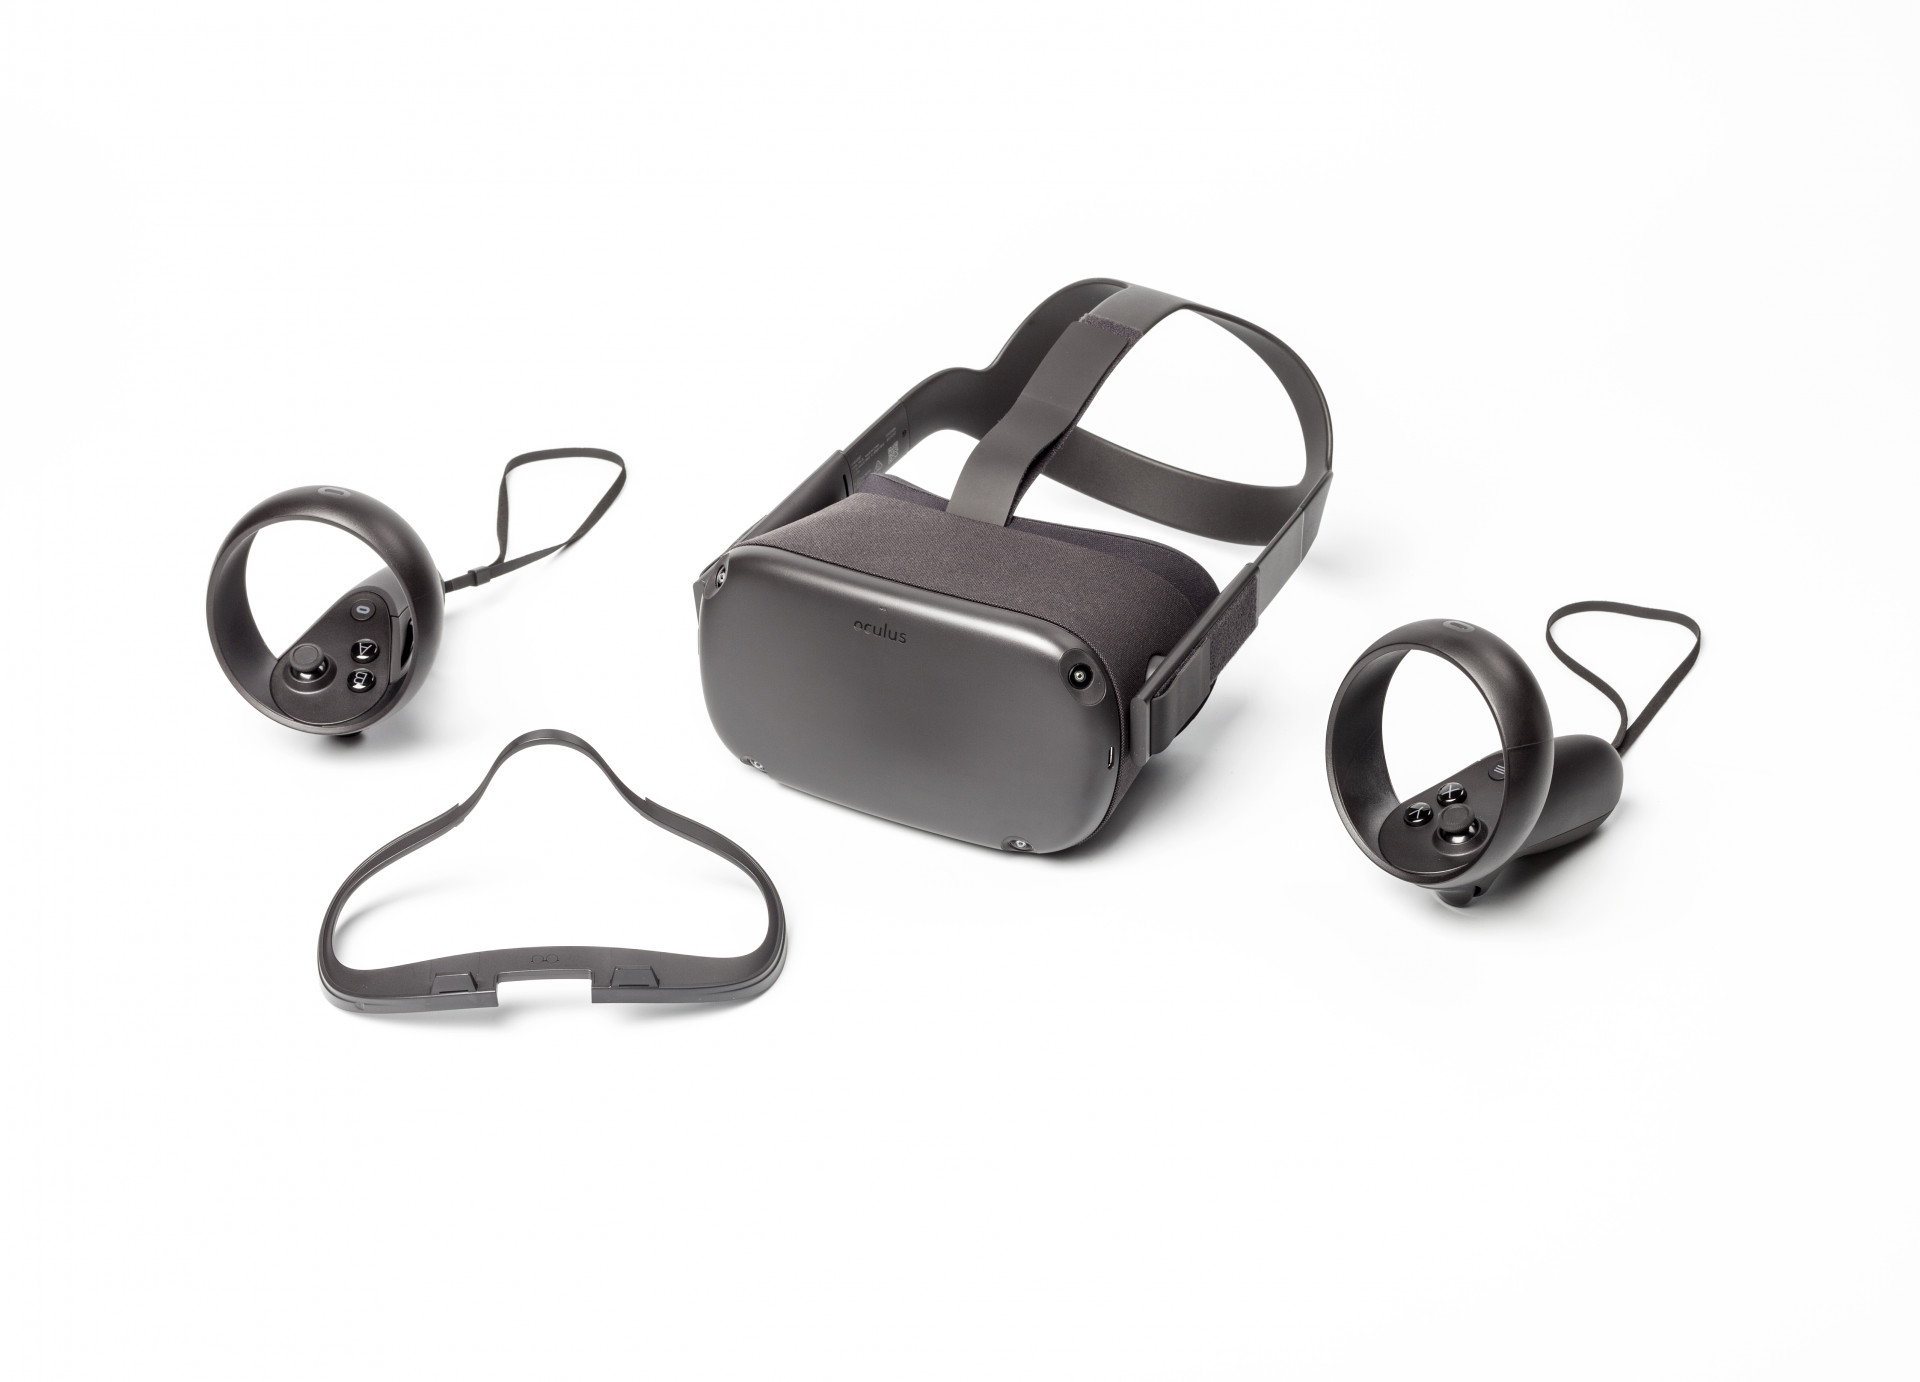 Oculus Quest in the test does not: VR with high-end tracking without